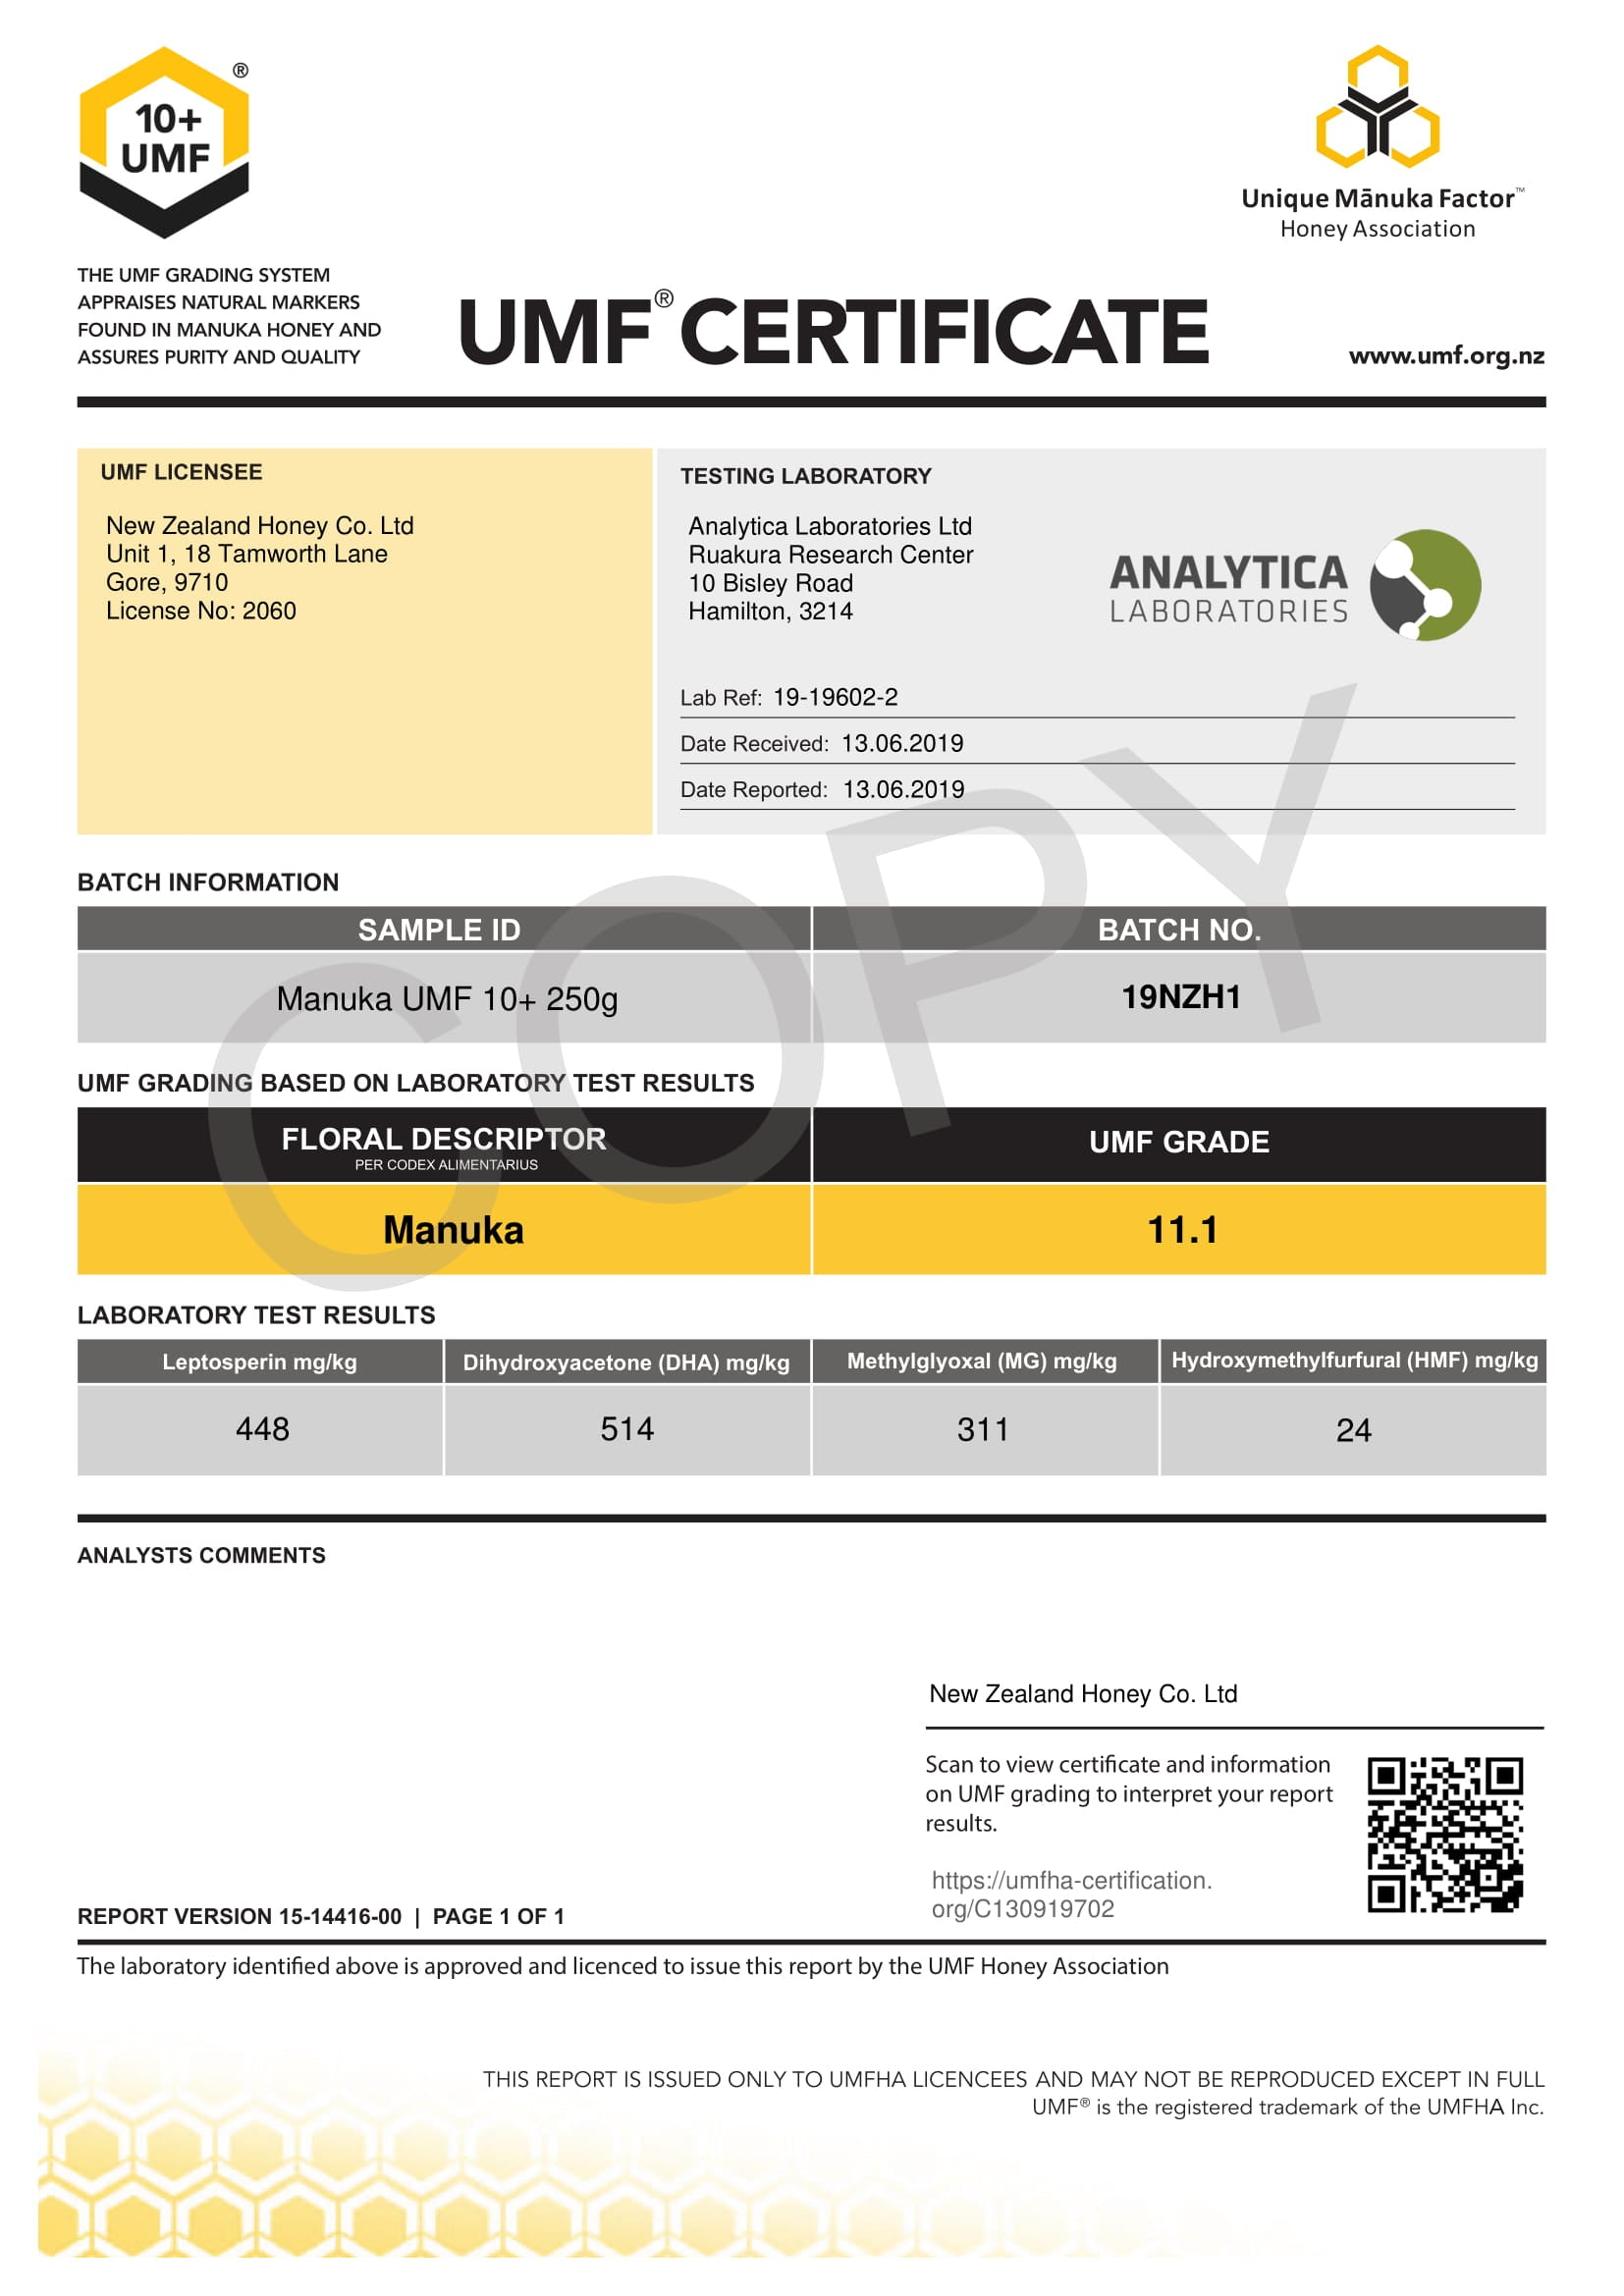 Manuka Honey UMF Certificate for LOT 19NZH1 from New Zealand Honey Co.